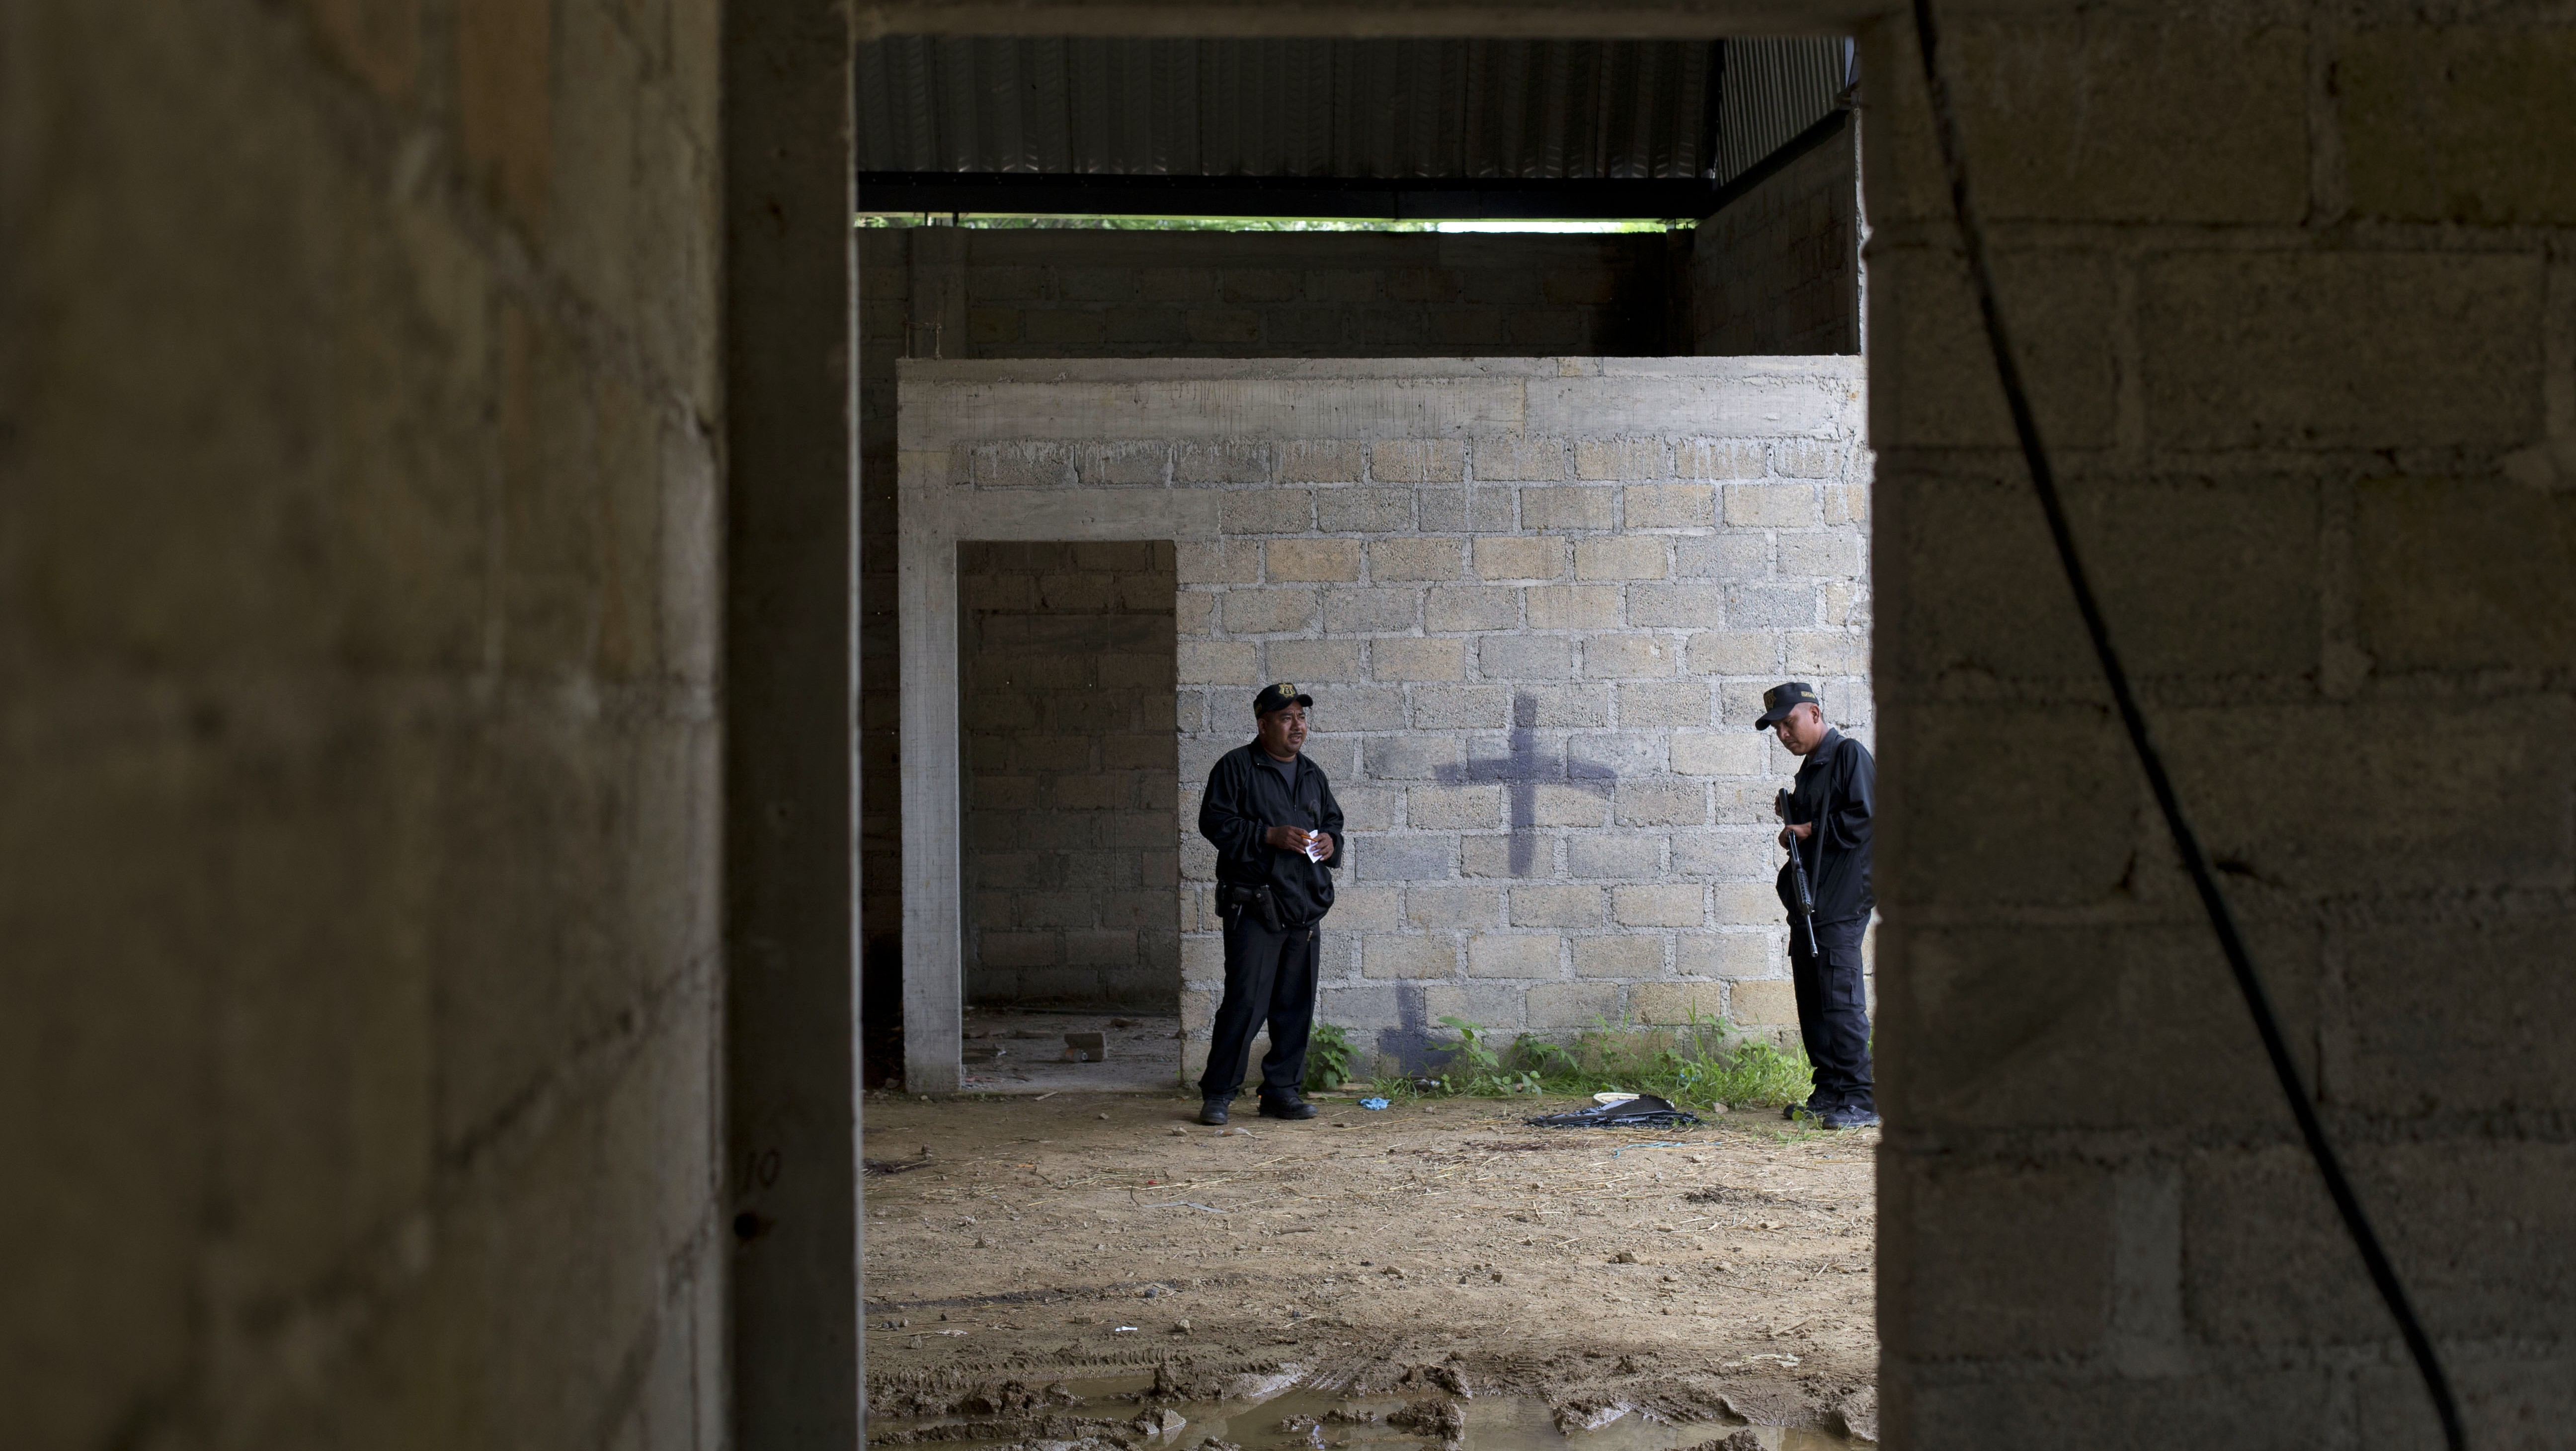 Mexican Soldiers Had Orders to Kill in the Darkness in Tlatlaya Massacre, Report Says